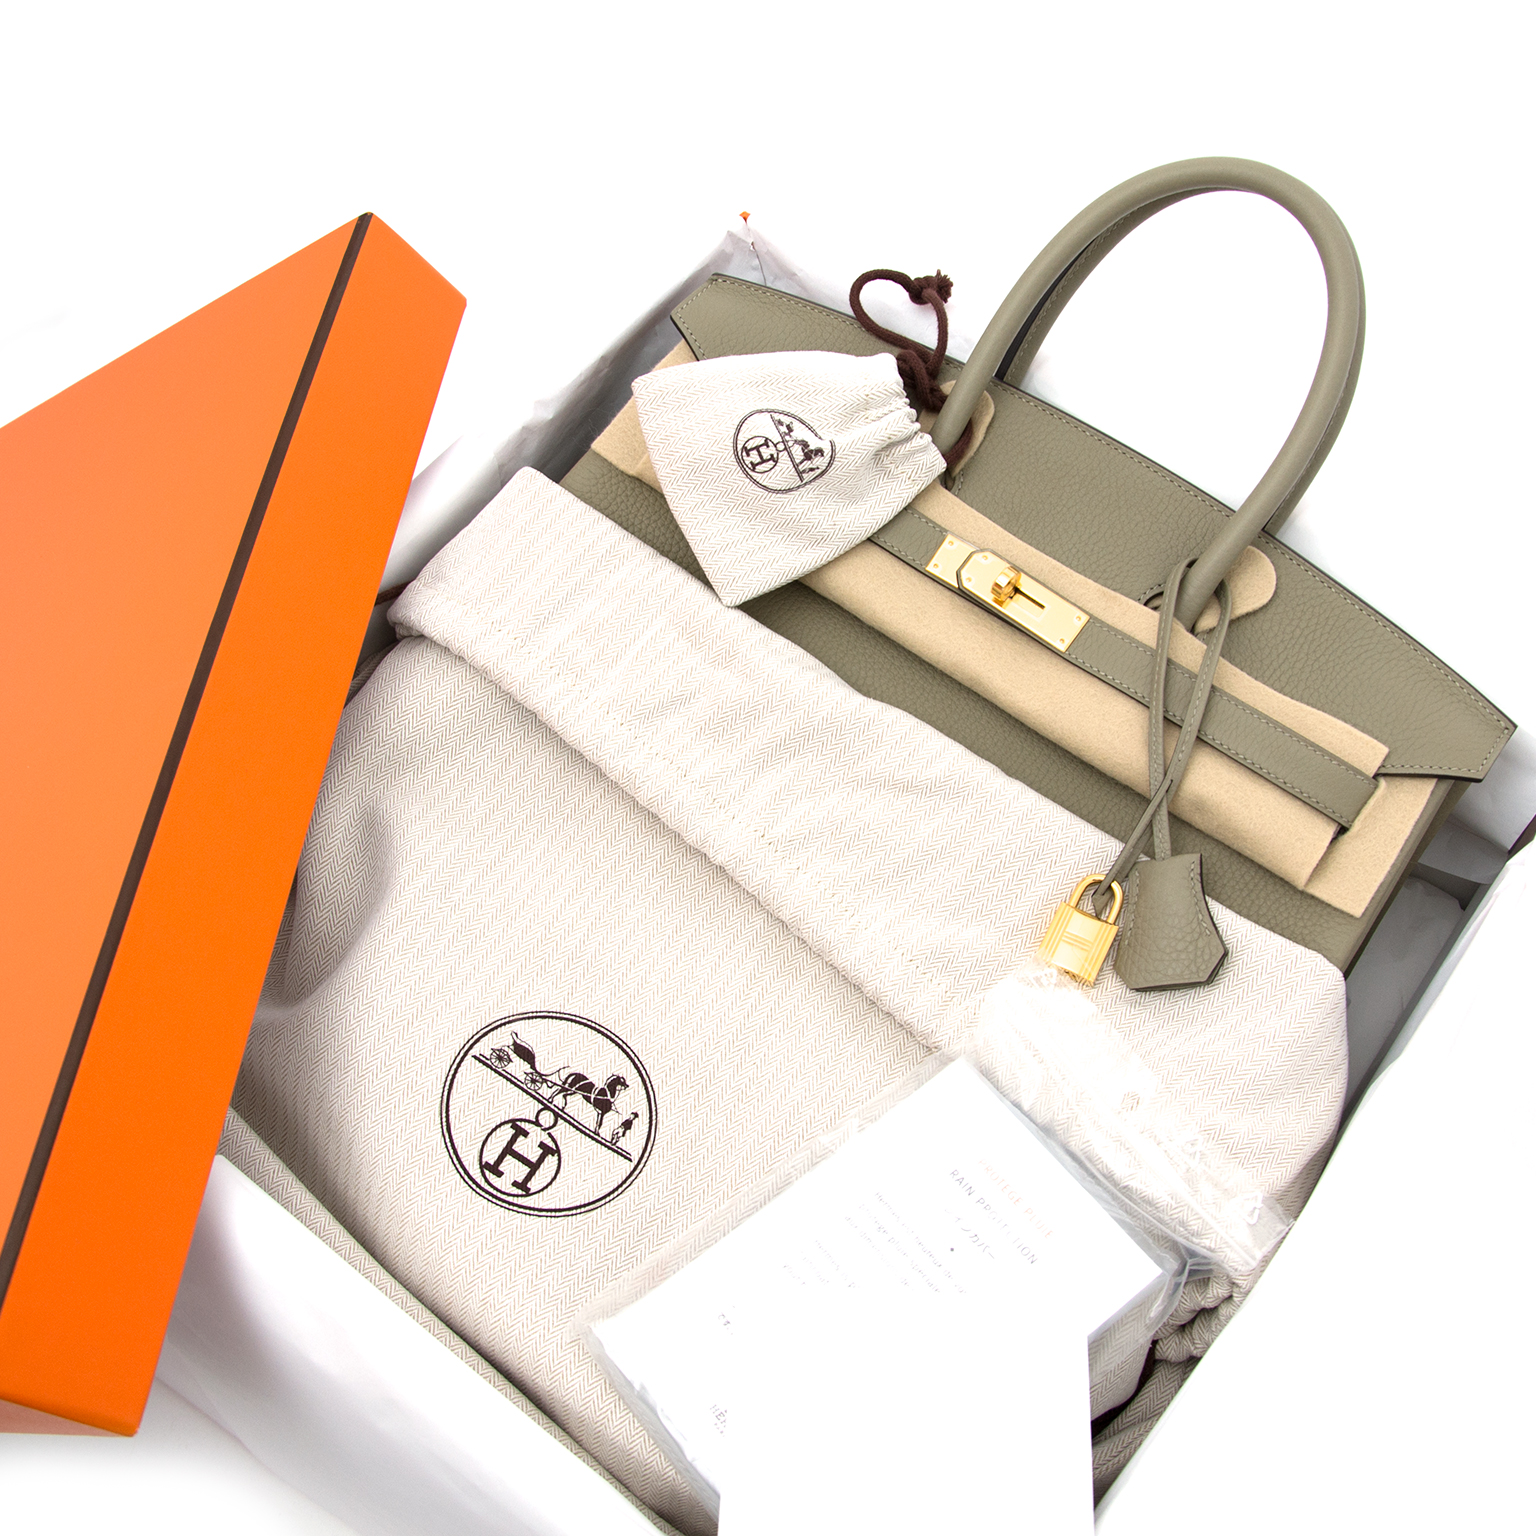 ab4b2ec2ad5 ... authentic Buy and sell your hermes birkin 35 taurillon clemence sauge  at labellov.com